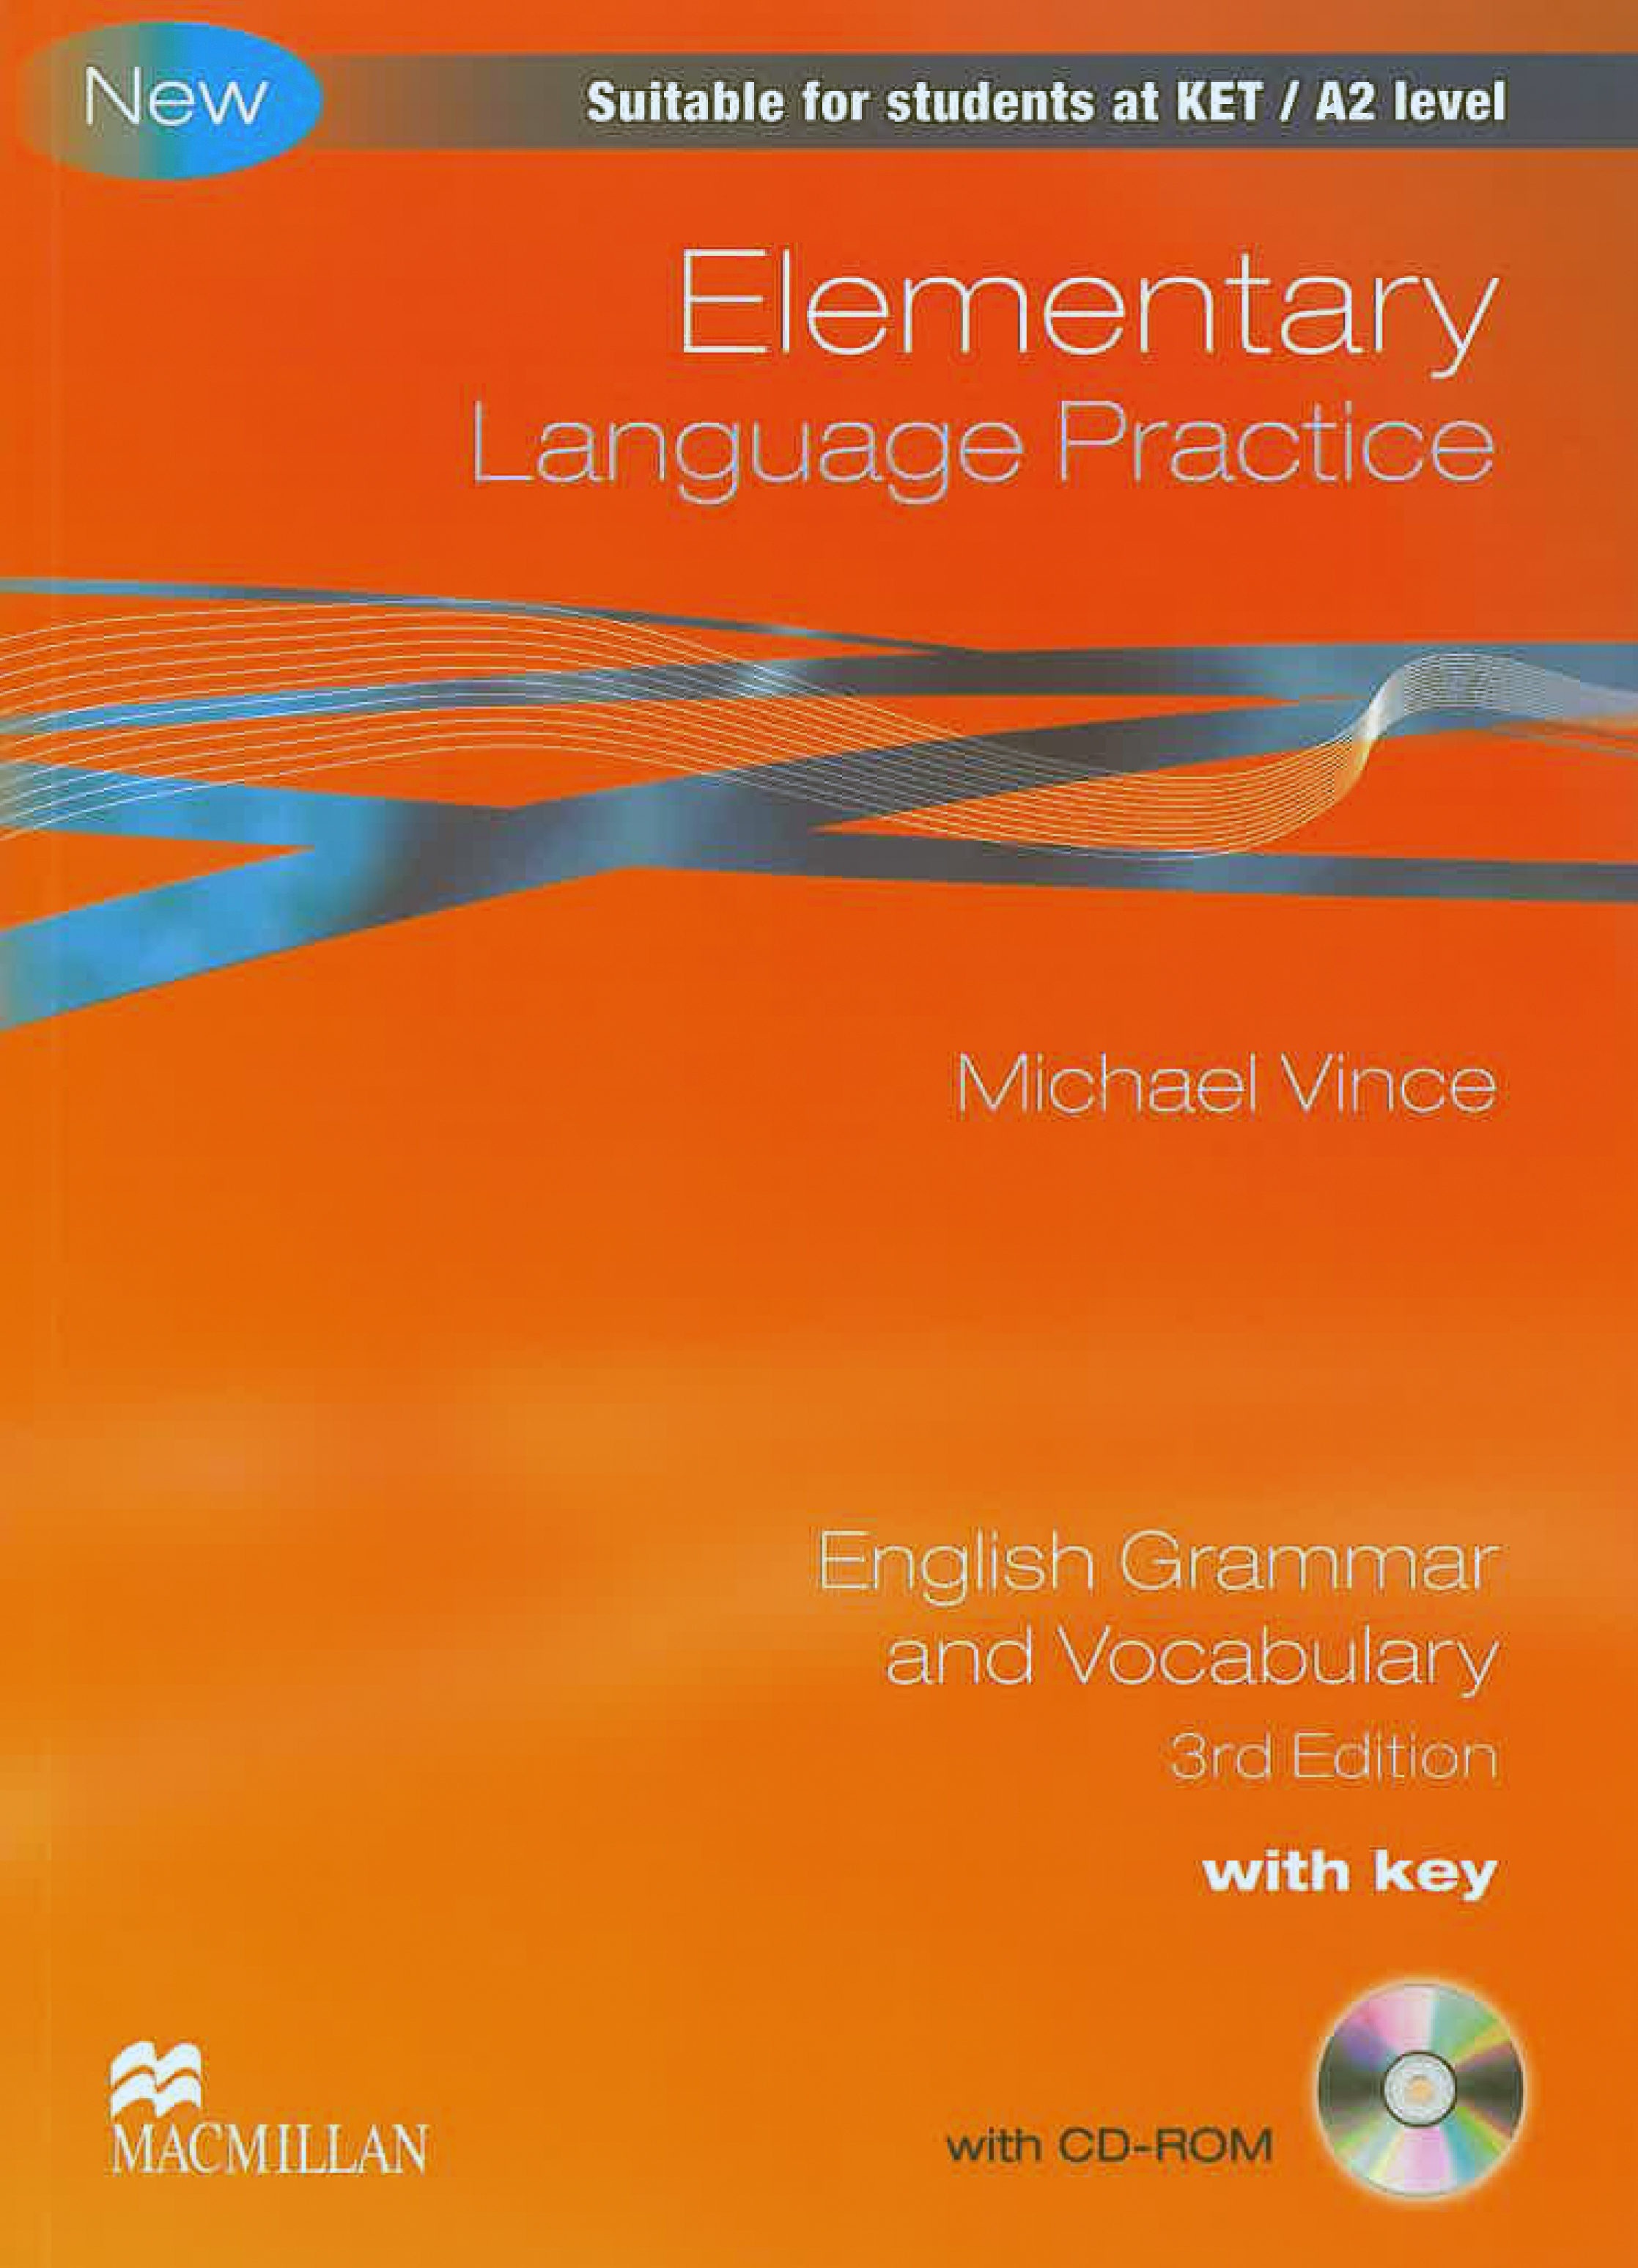 Advanced Language Practice